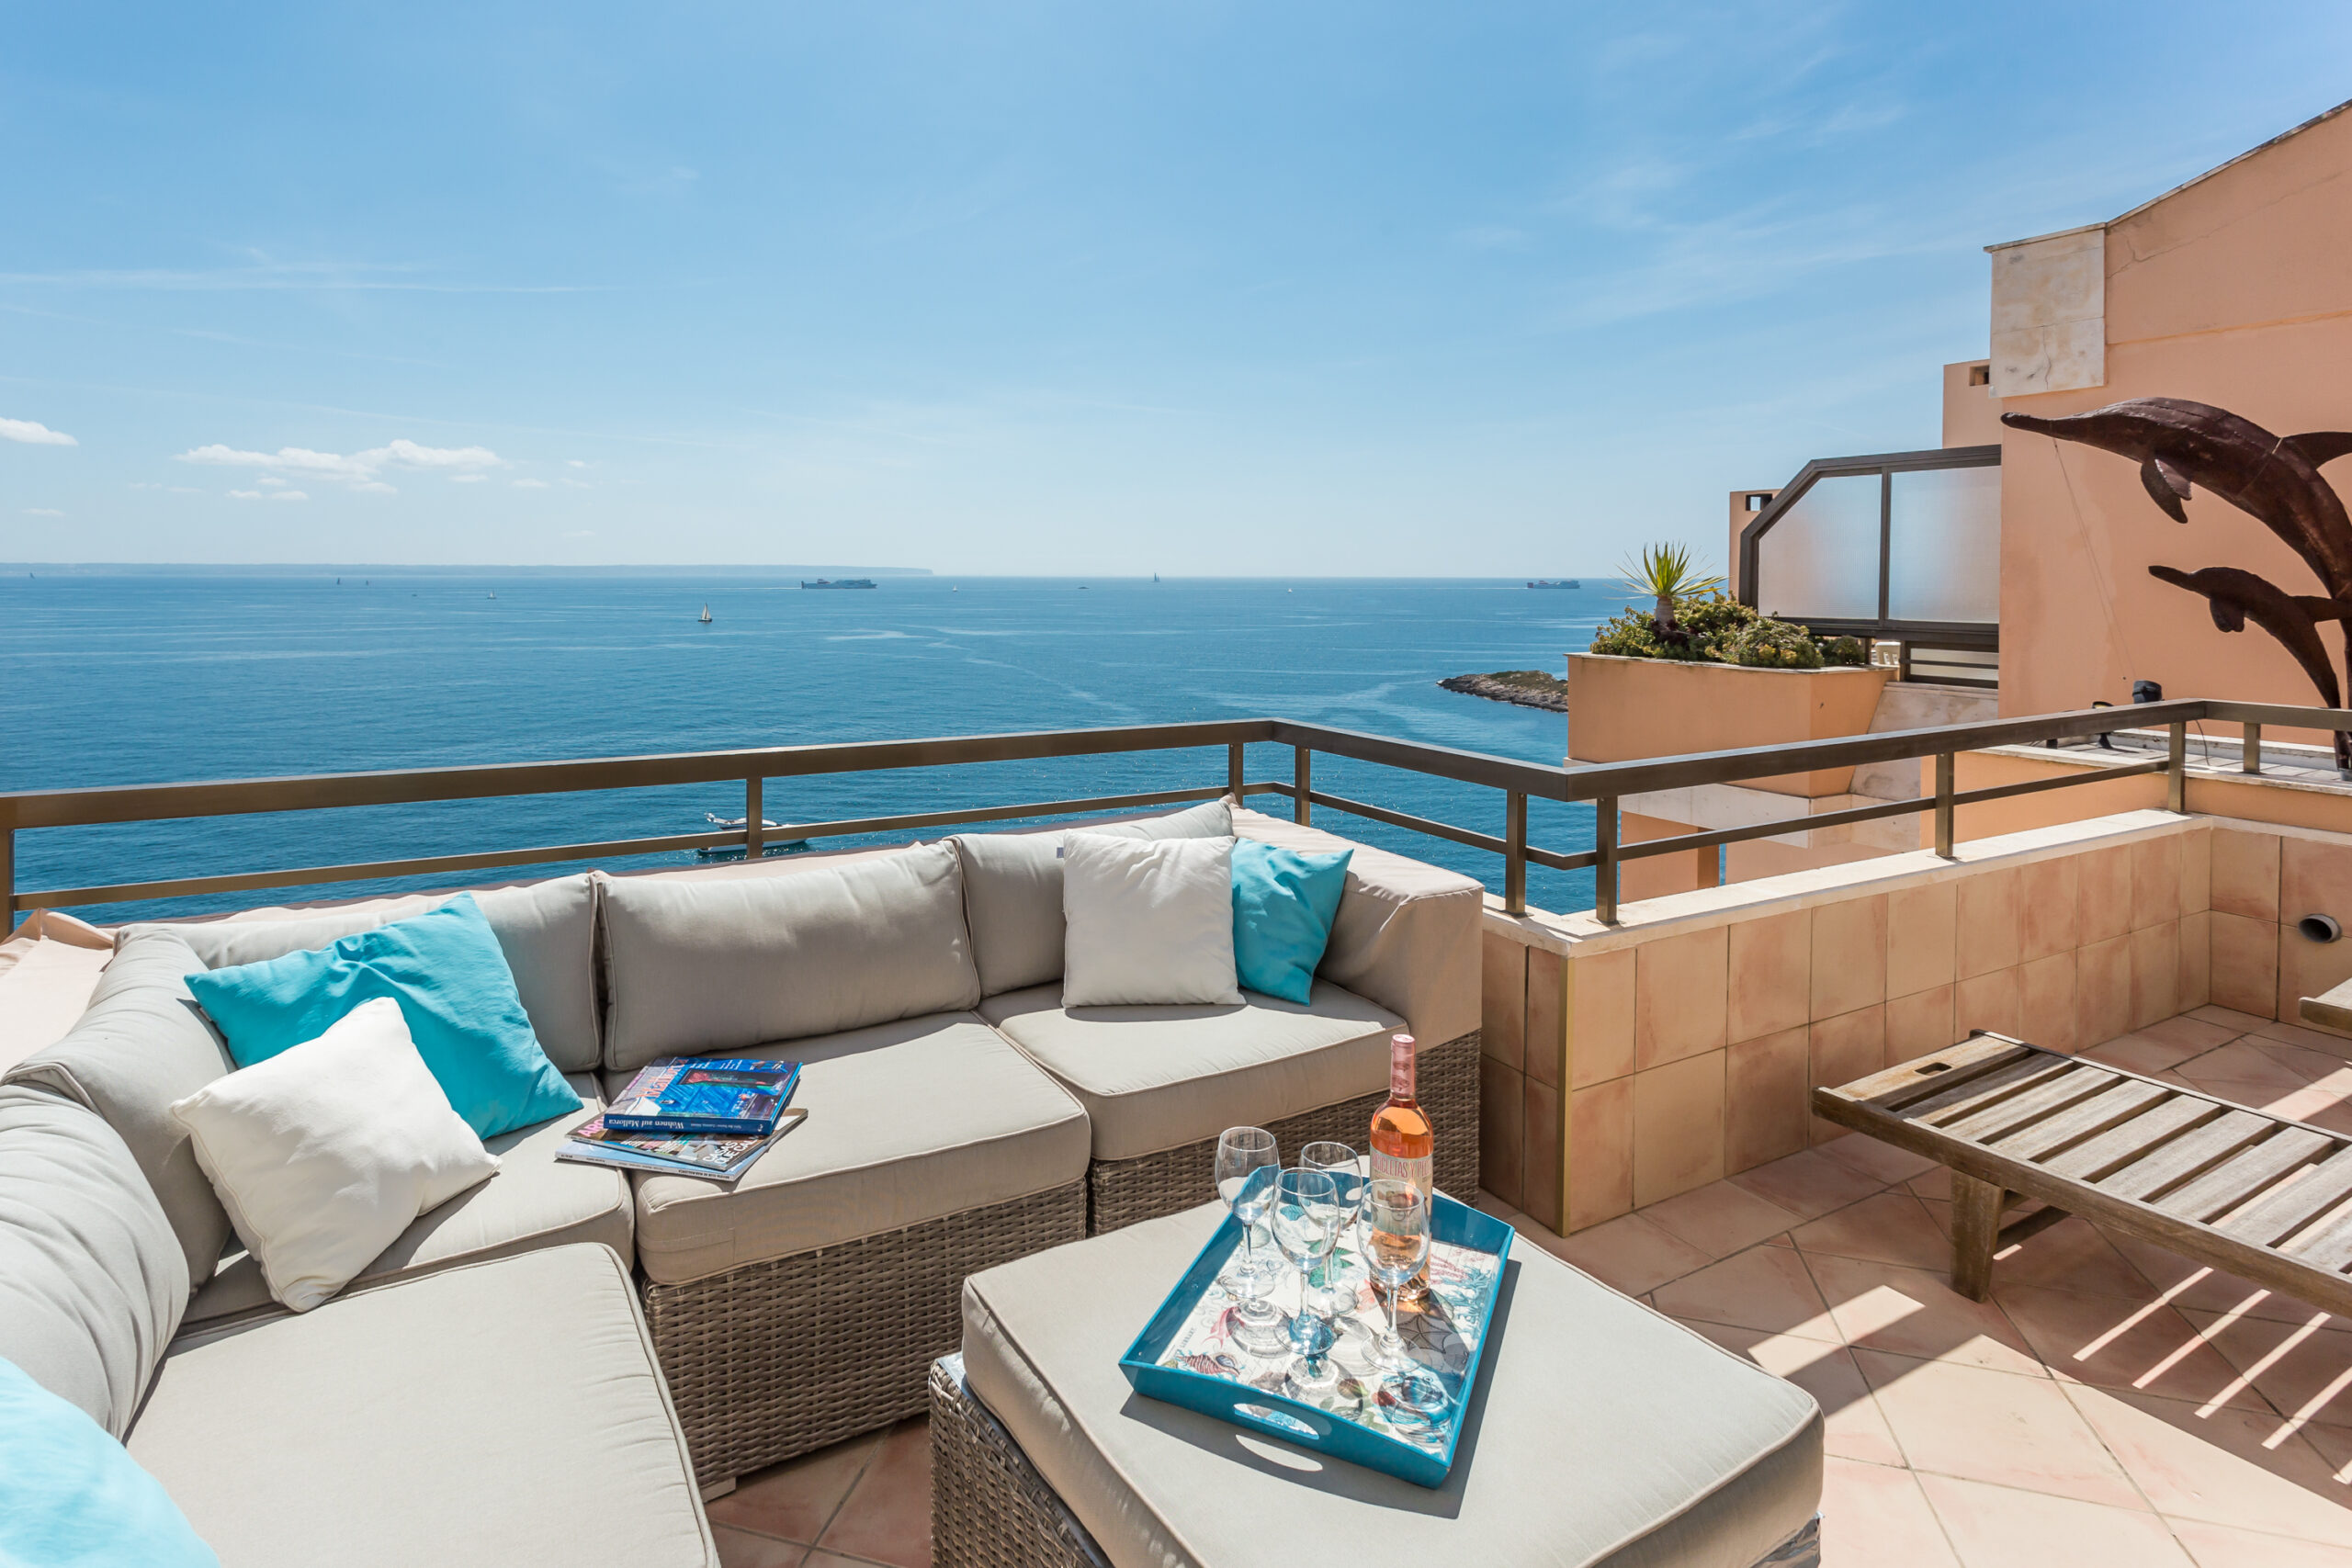 Illetes: Renovated 3 bedrooms apartment with impressive views to the sea